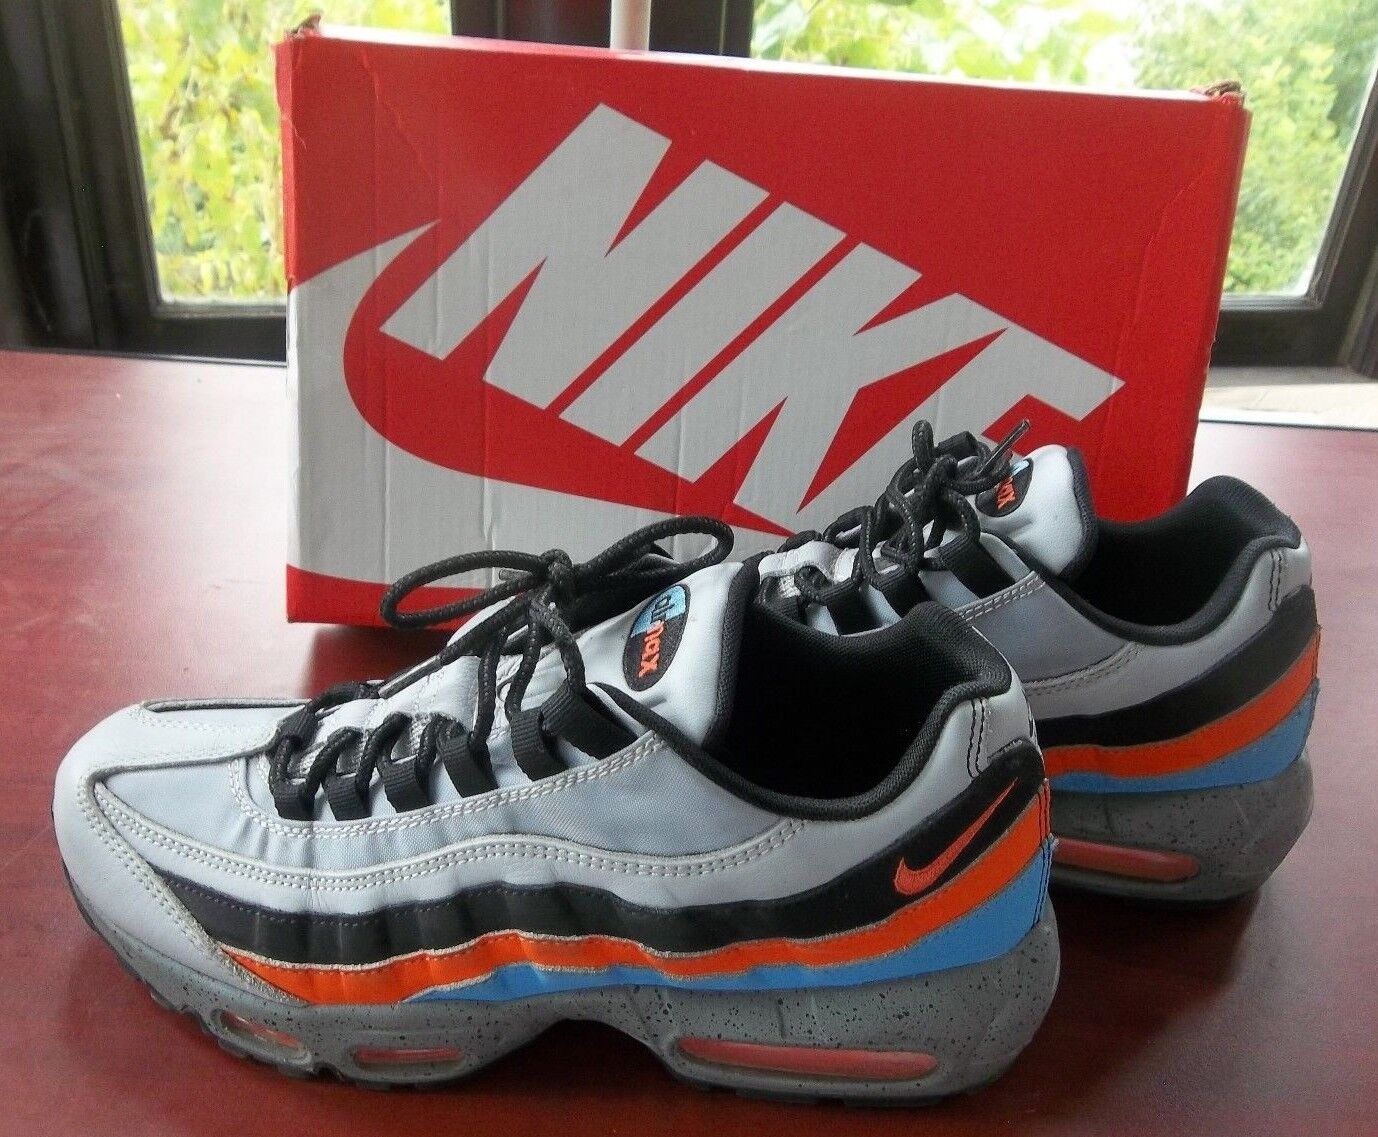 NIKE AIR MAX 95 PRM Size 8.5 Wolf Grey / Safety Orange IN bOX 538416 015 ESCAPE